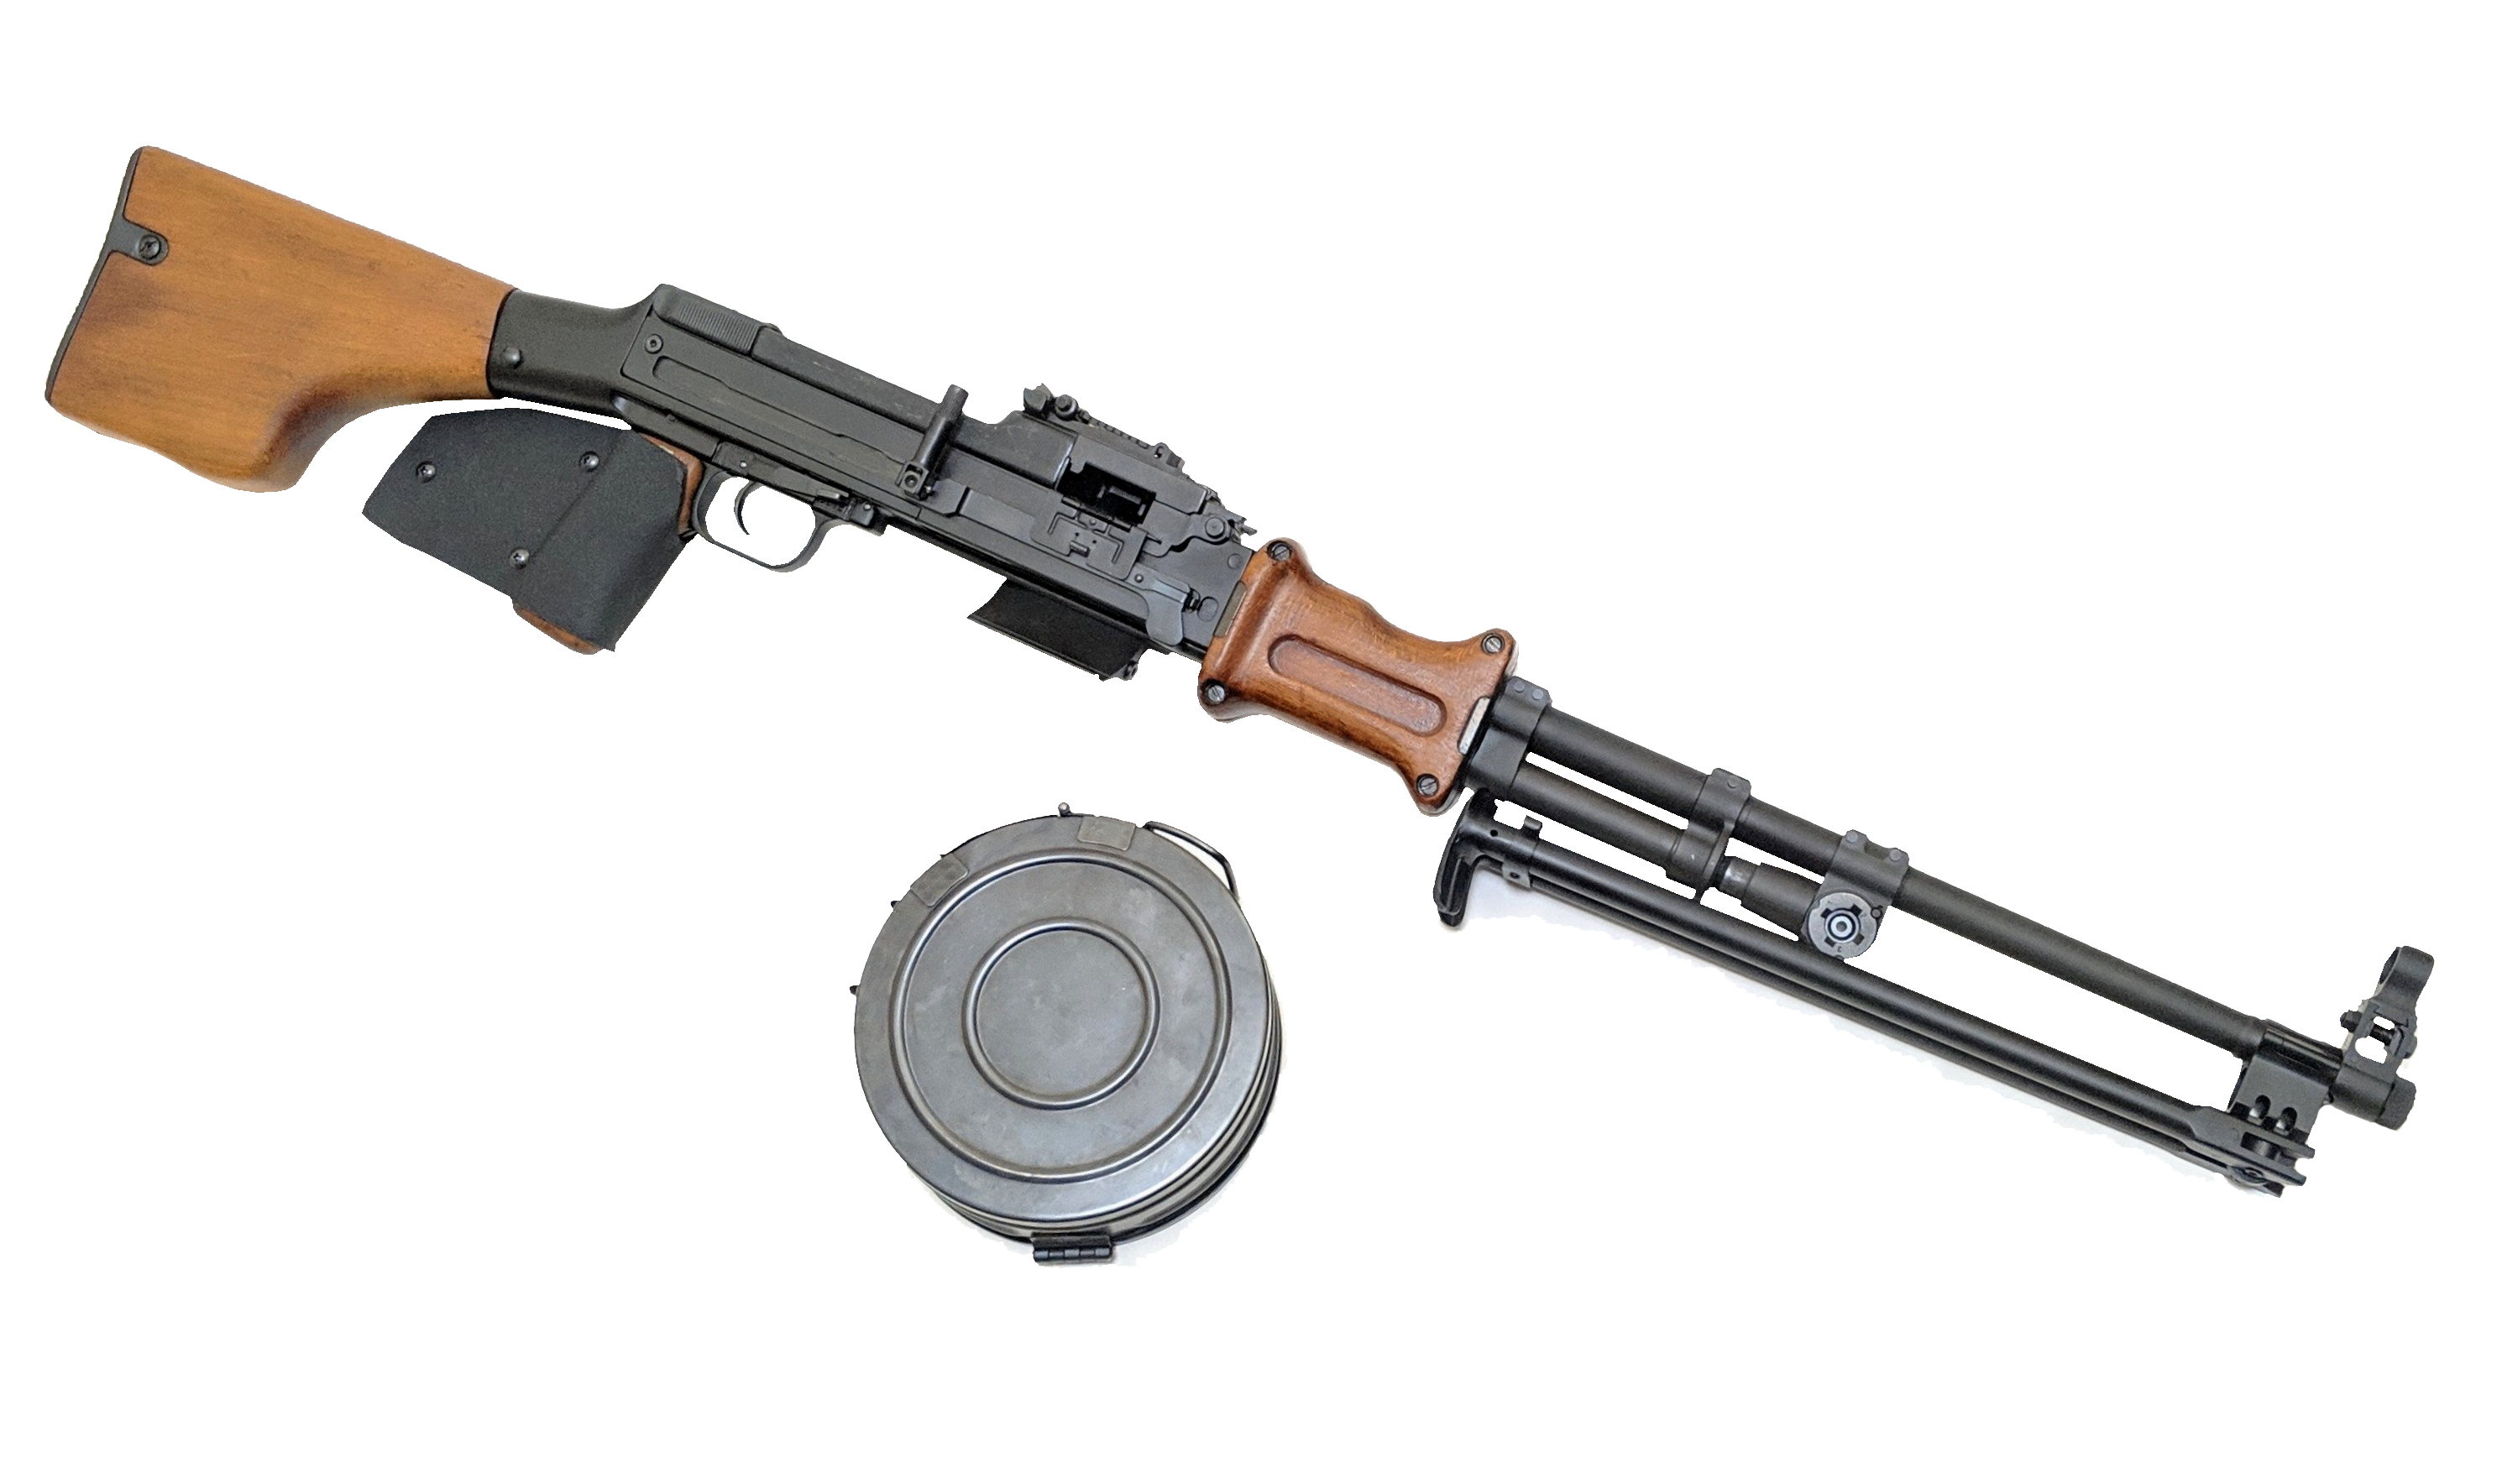 The semi auto Featureless DSA RPD 762x39mm rifle is the most cost effective belt fed for California! It uses the very affordable 7.62x39 round. Available from Cordelia Gun Exchange!